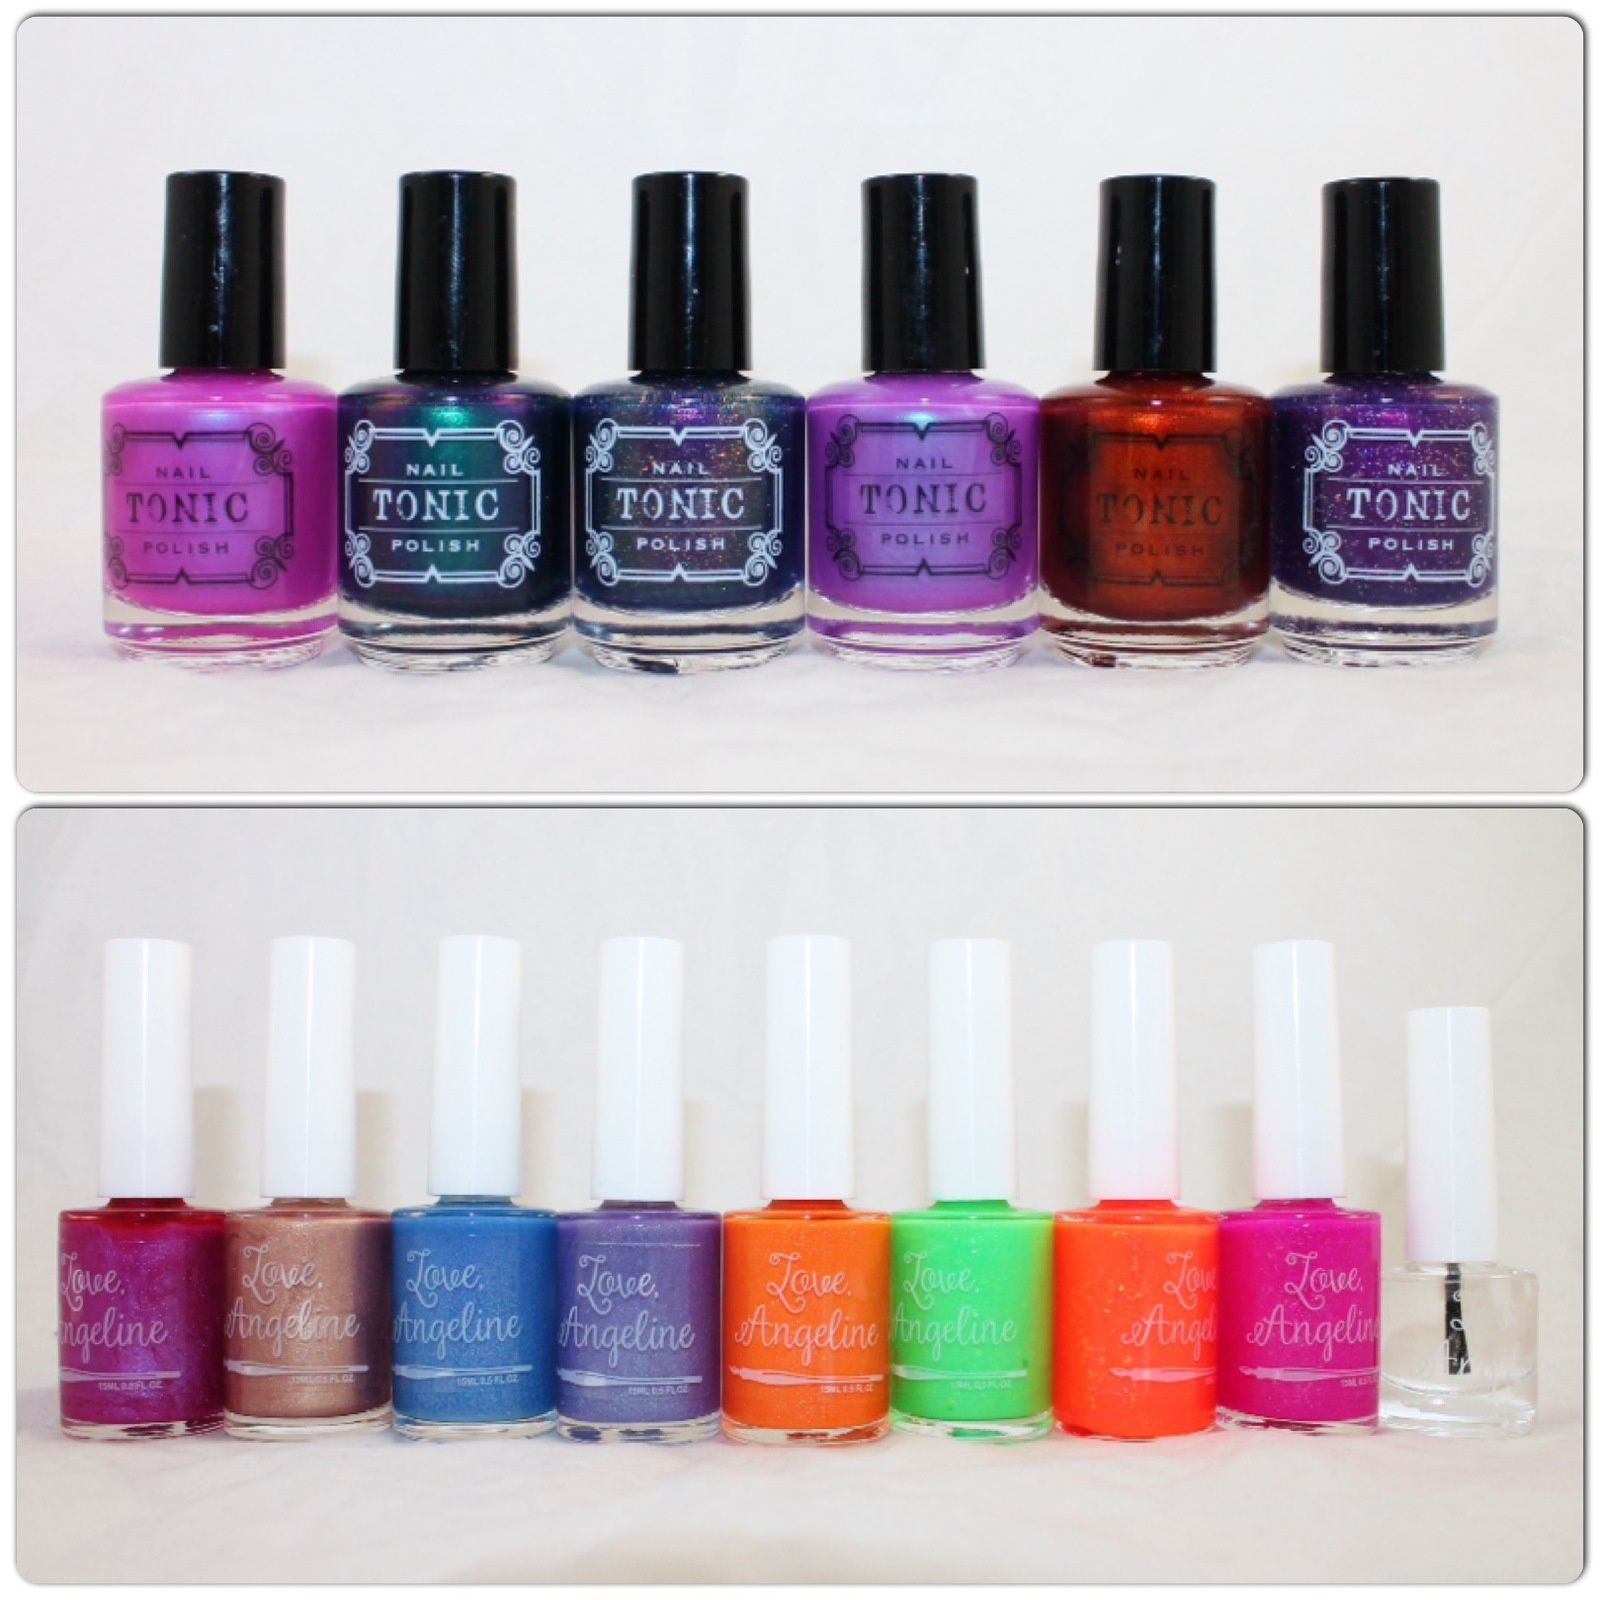 Tonic Polish Alexandria's Genesis, Dragon at Dusk, Enchanted Elixir, Light of Lyra, Lava Lust, Huckleberry Sparkle. Love Angeline Take Me Away, Cheeky Tiki, Calm Waters, Ocean Breeze, Cape Coral 2.0, Apple Blossom, Mac N Tosh, Spike's Crush, Topped With Love.